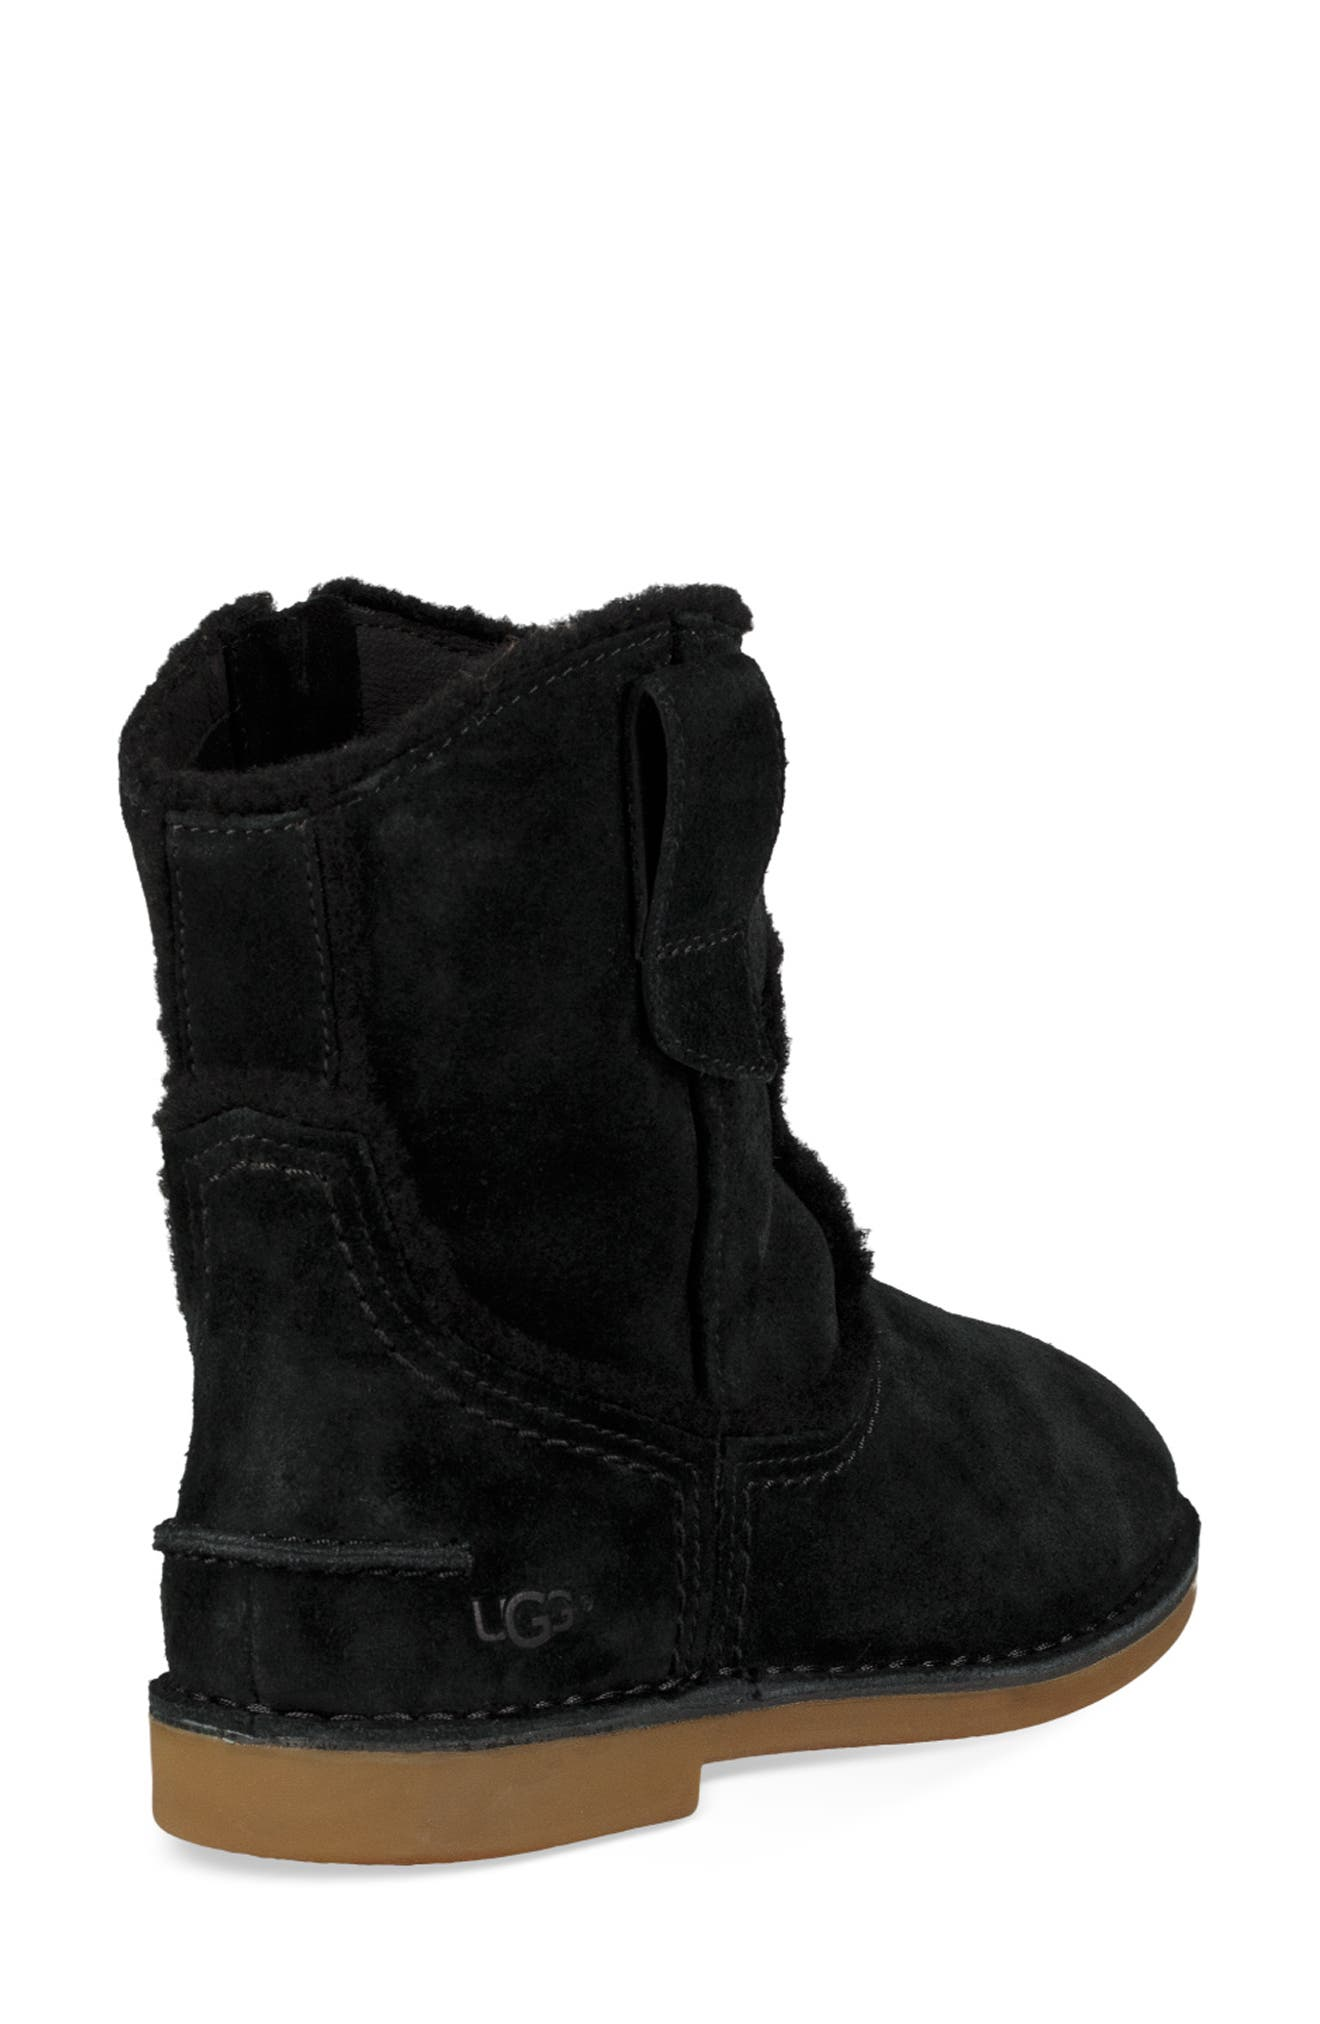 Catica Boot,                             Alternate thumbnail 2, color,                             BLACK SUEDE